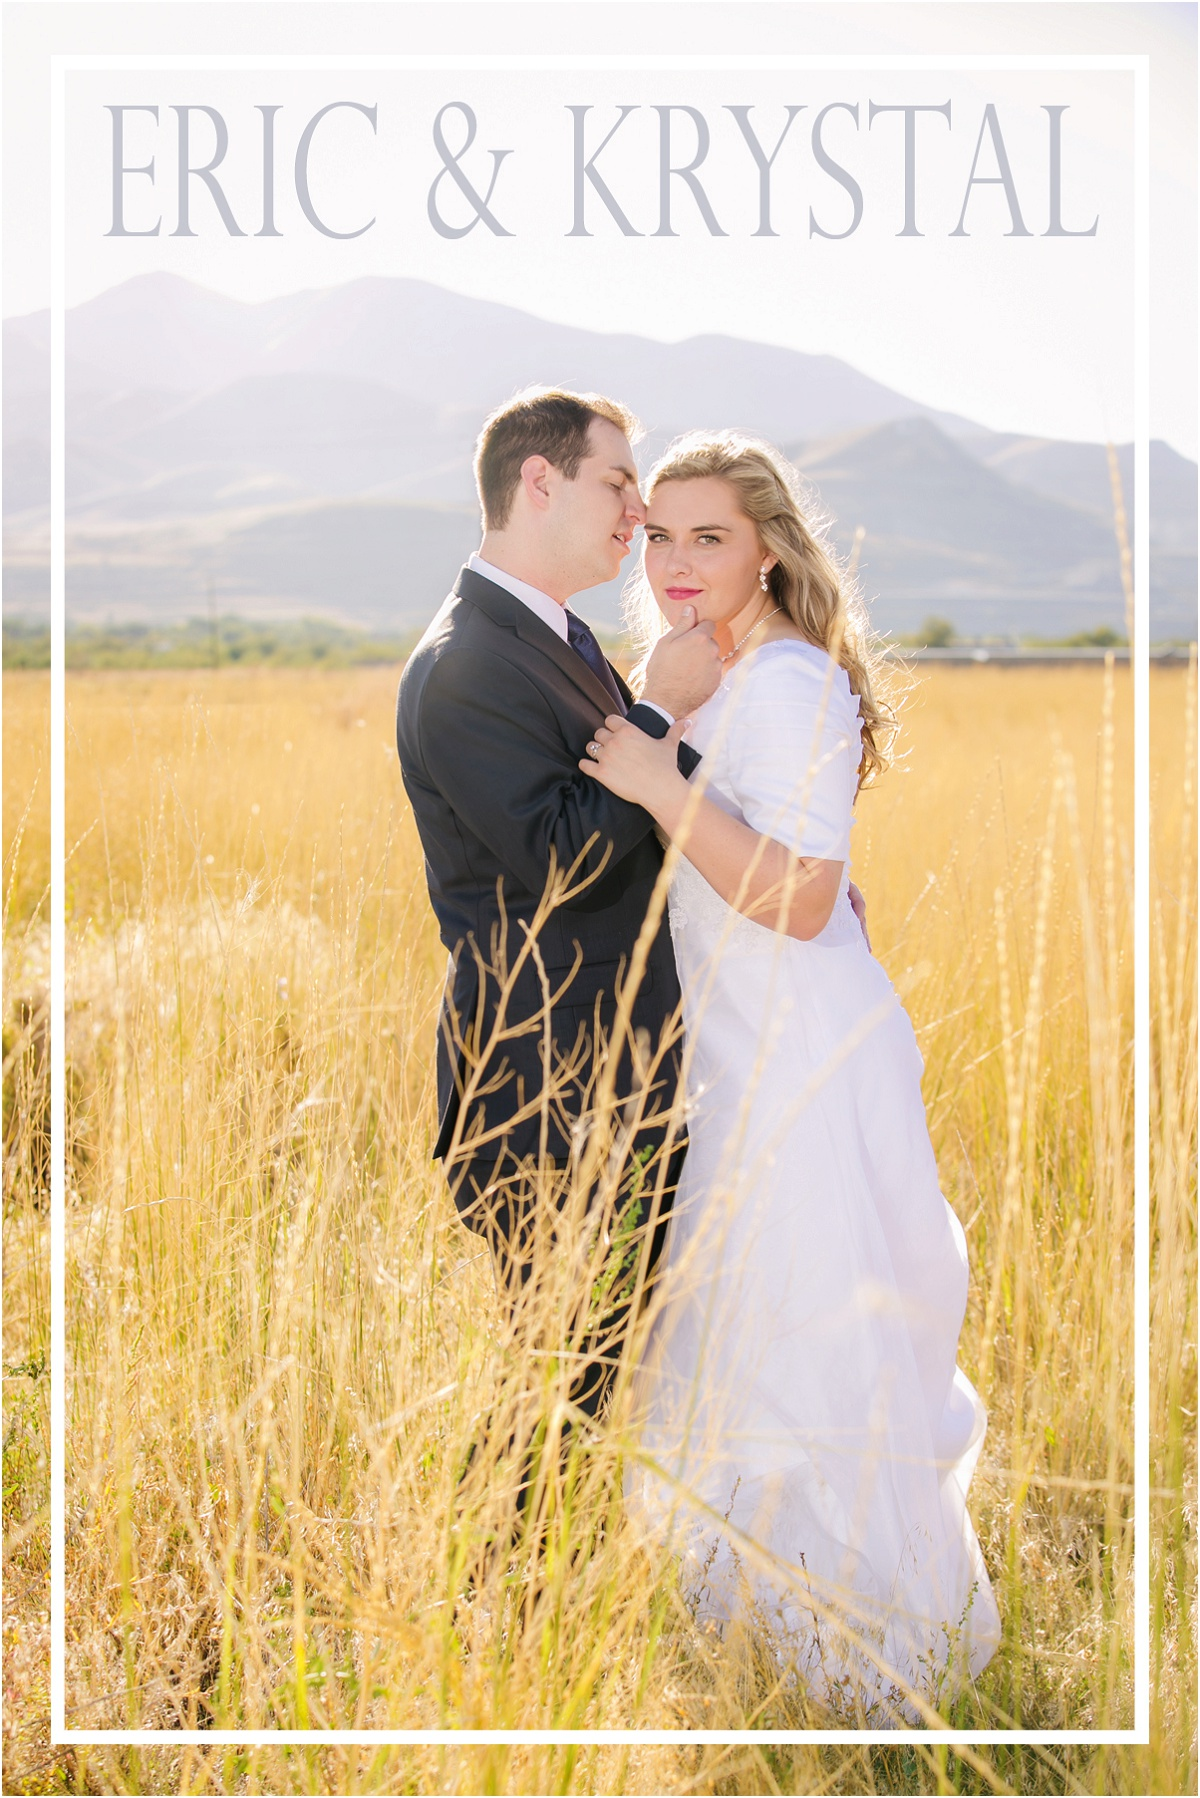 Terra Cooper Photography Weddings Brides 2015_5400.jpg